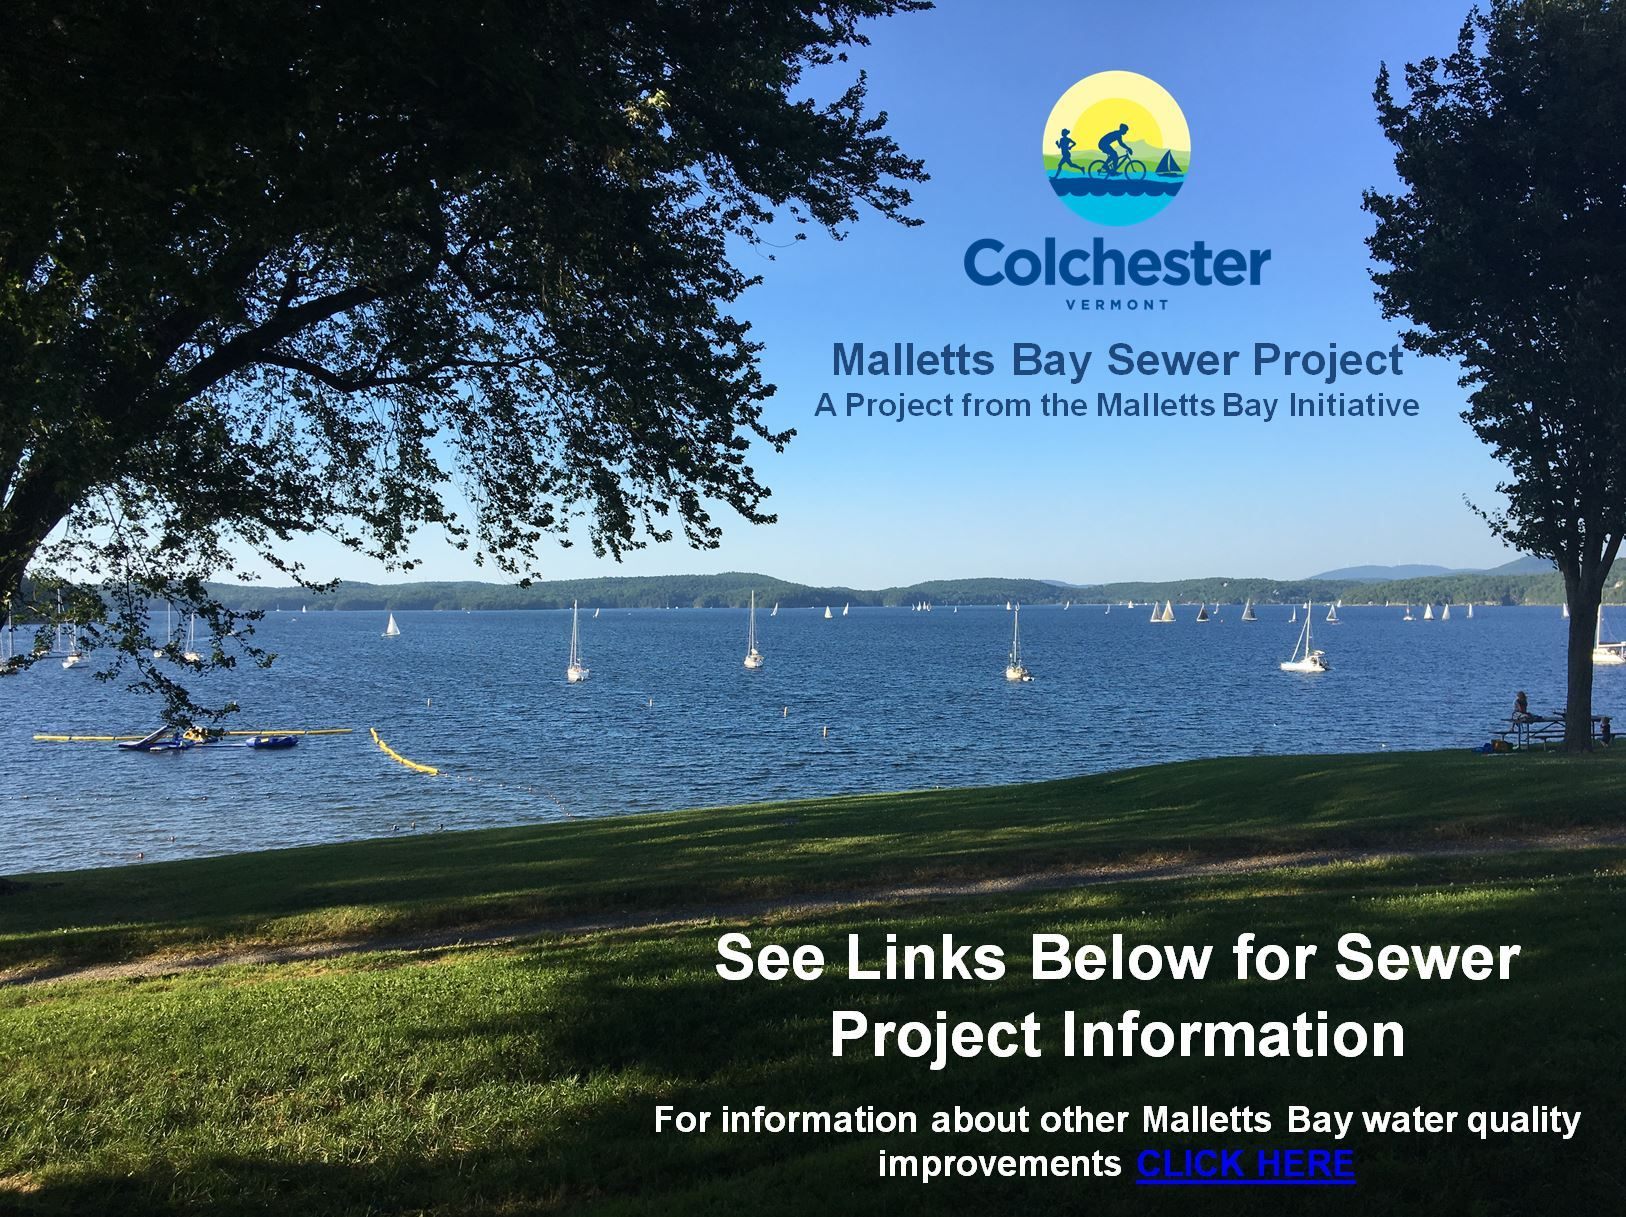 Malletts Bay Sewer Project Homepage